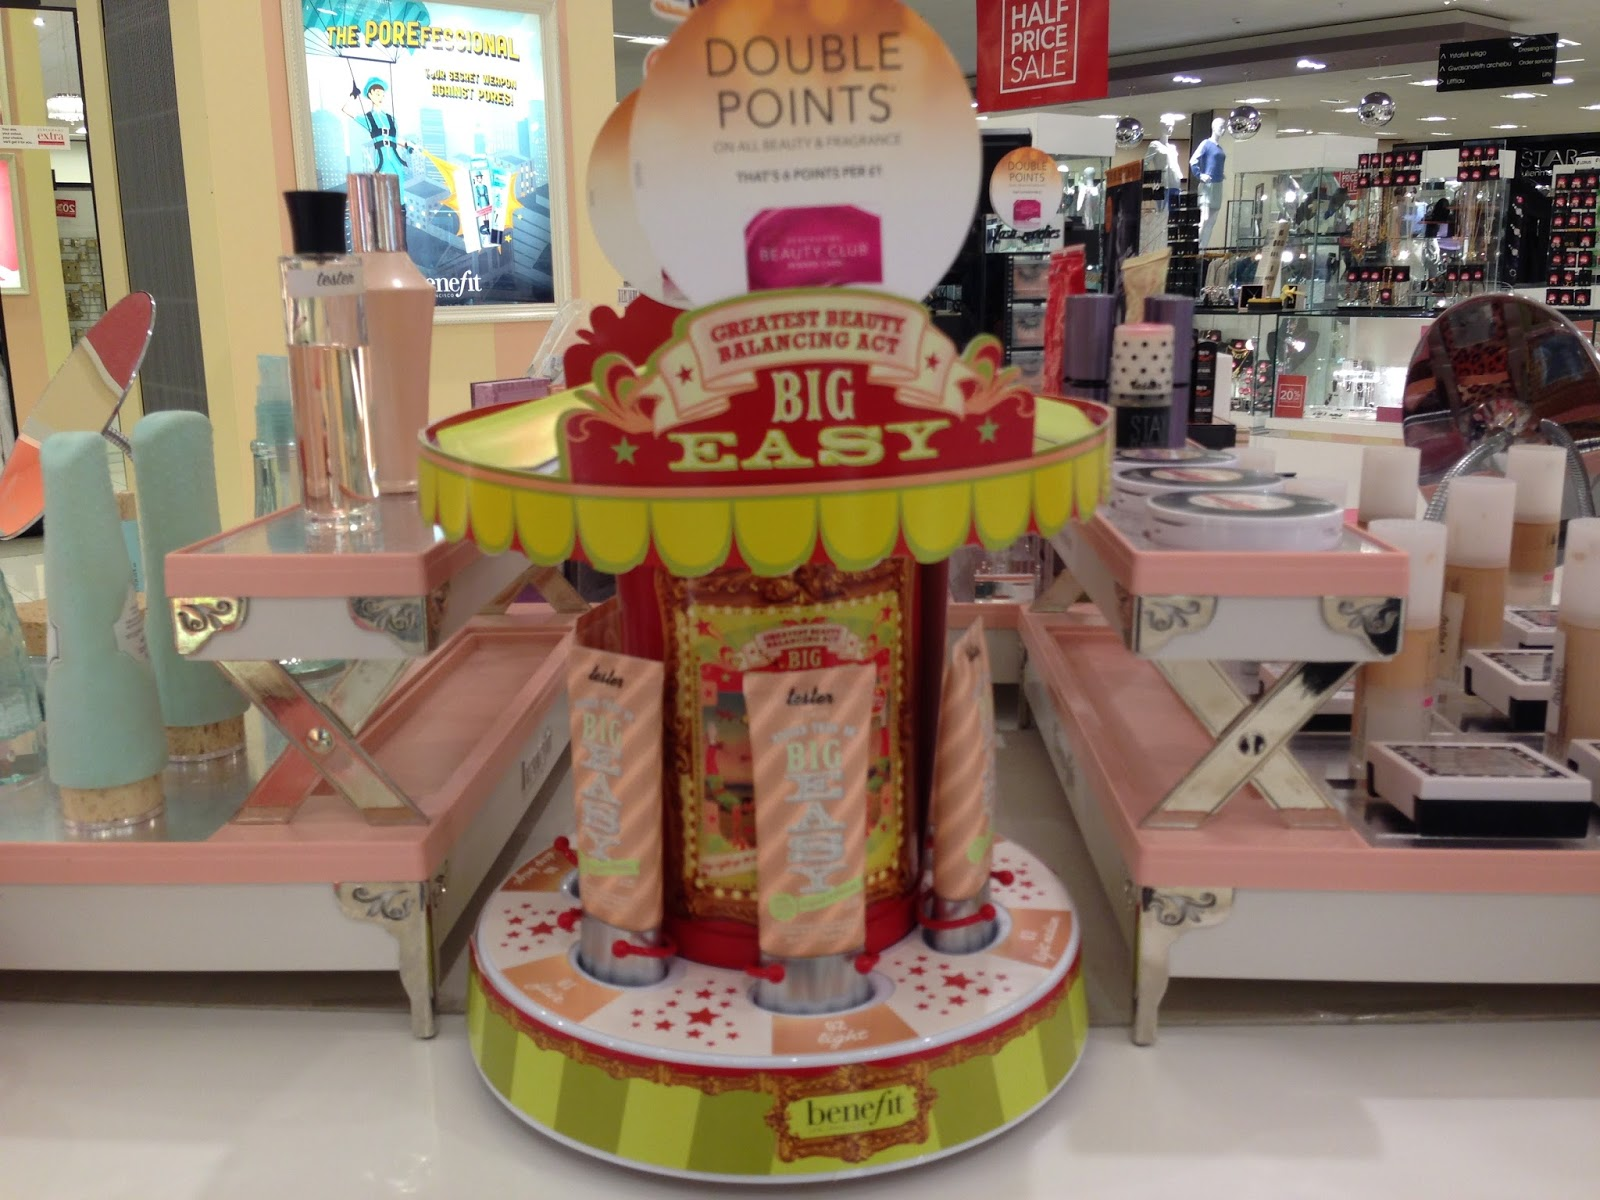 Bare Minerals Display Stand Bare Minerals Makeup Display